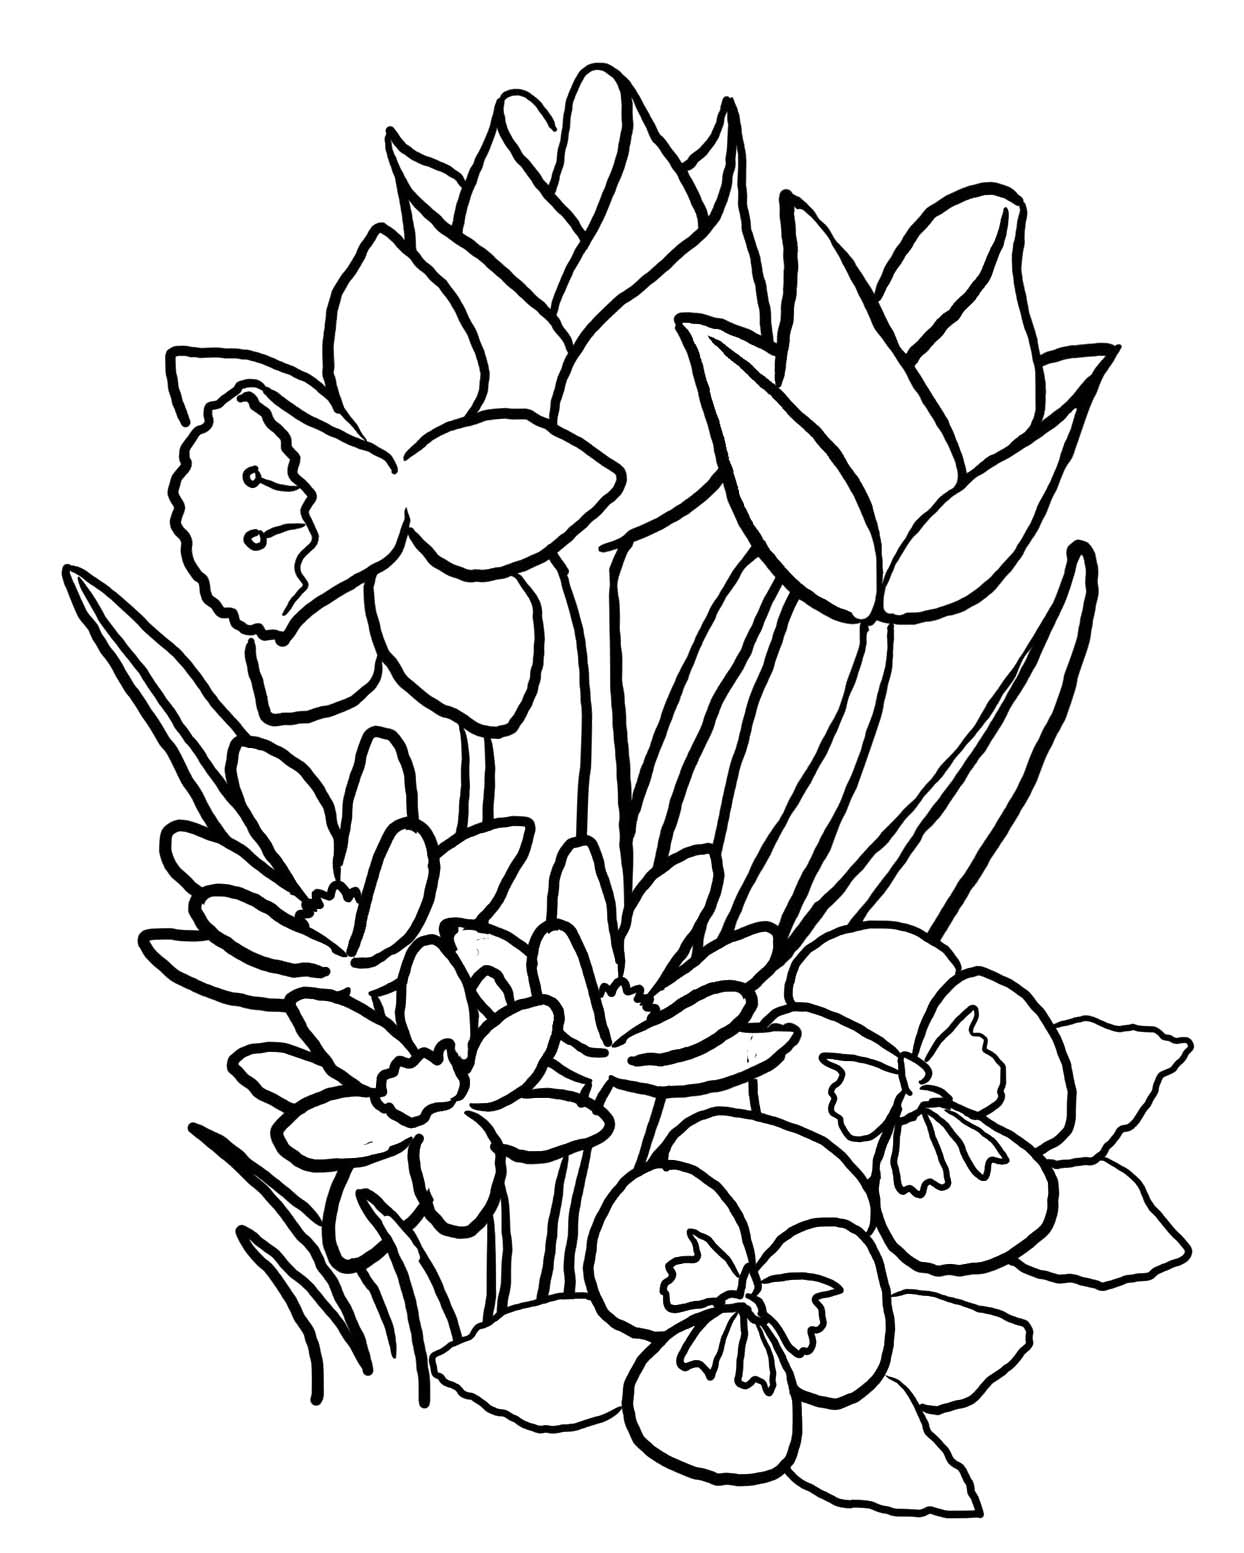 flowers to color and print coloring pages of flowers 2 coloring pages to print flowers color to print and